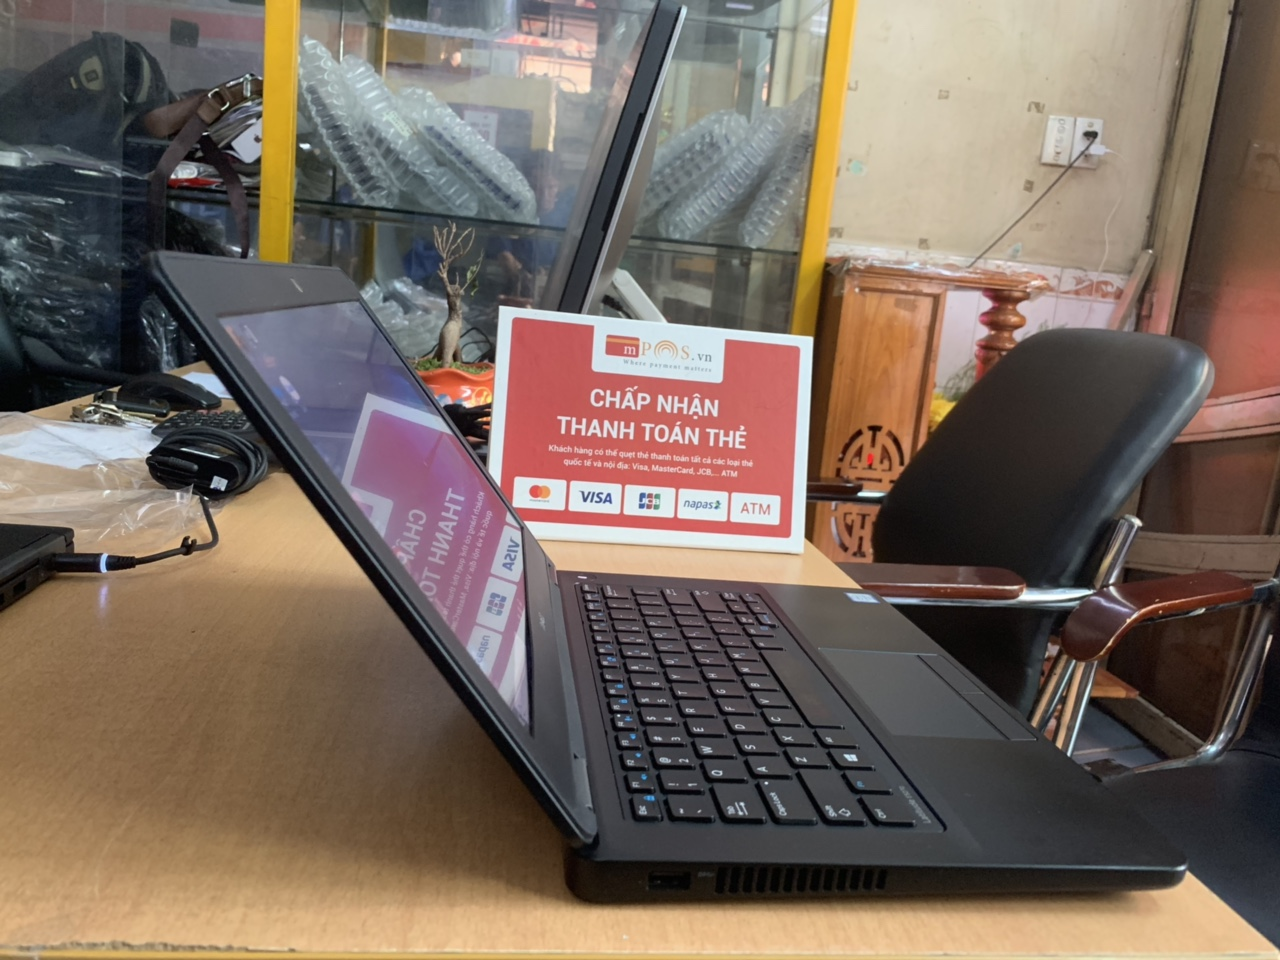 DELL LATITUDE E5270 I5 6300U 4GB 128GB 12.5